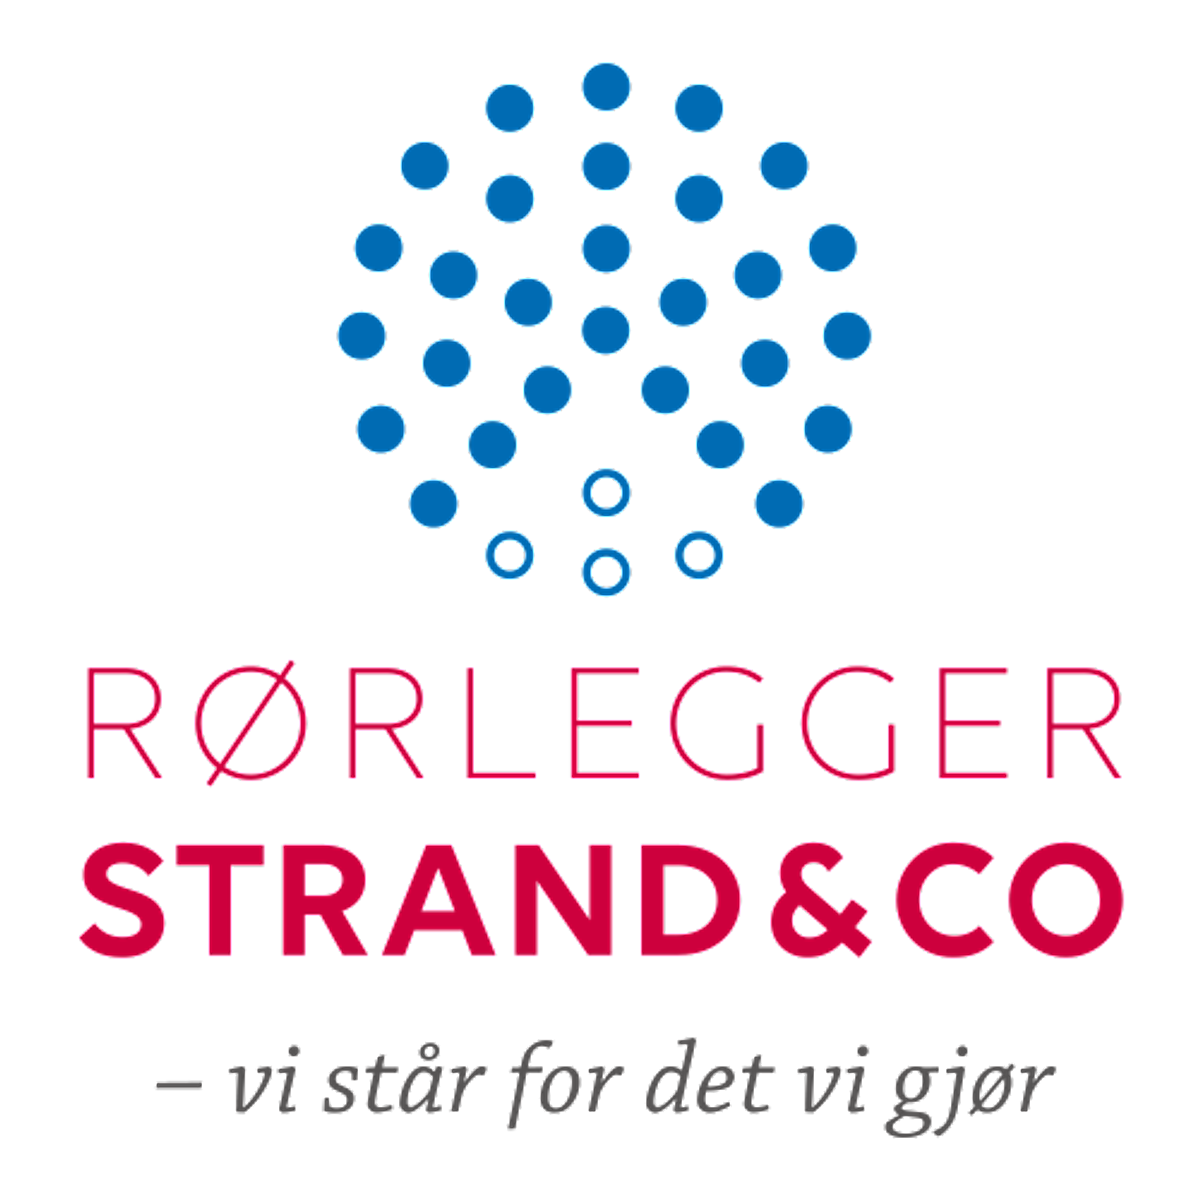 Logo, Rørlegger Strand & Co AS